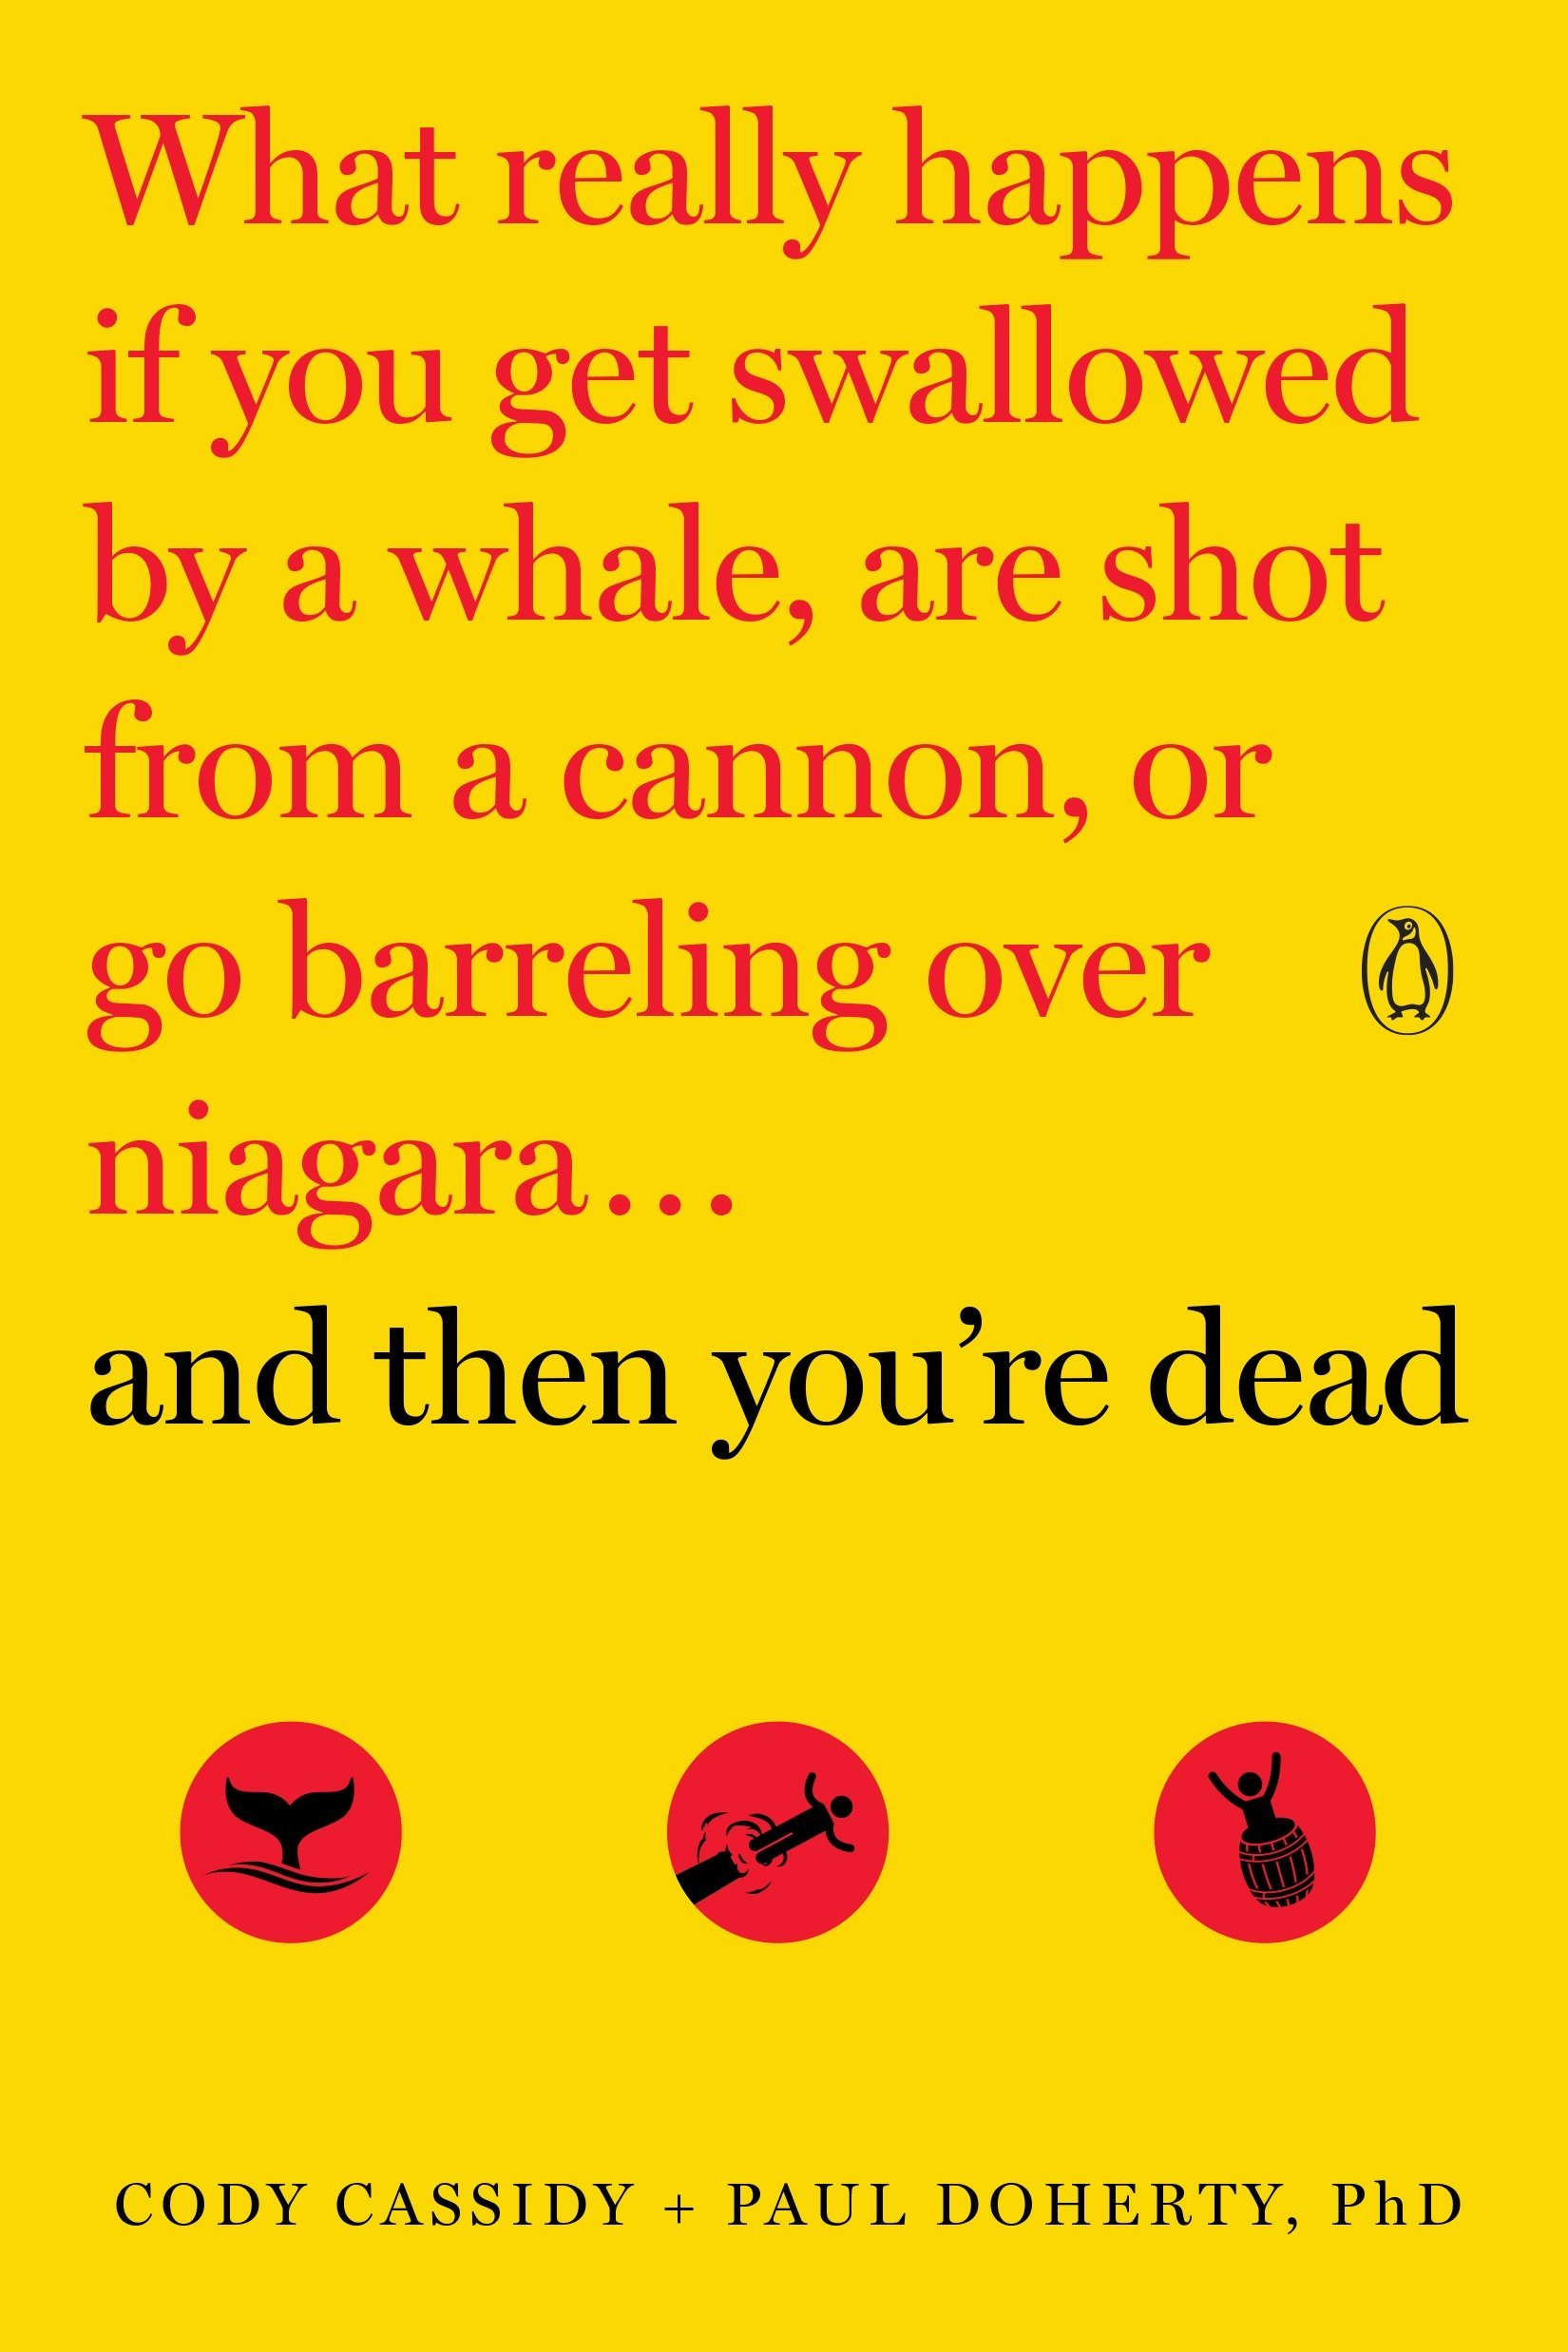 And Then You're Dead: What Really Happens If You Get Swallowed by a Whale, Are Shot from a Cannon, or Go Barreling over Niagara pdf